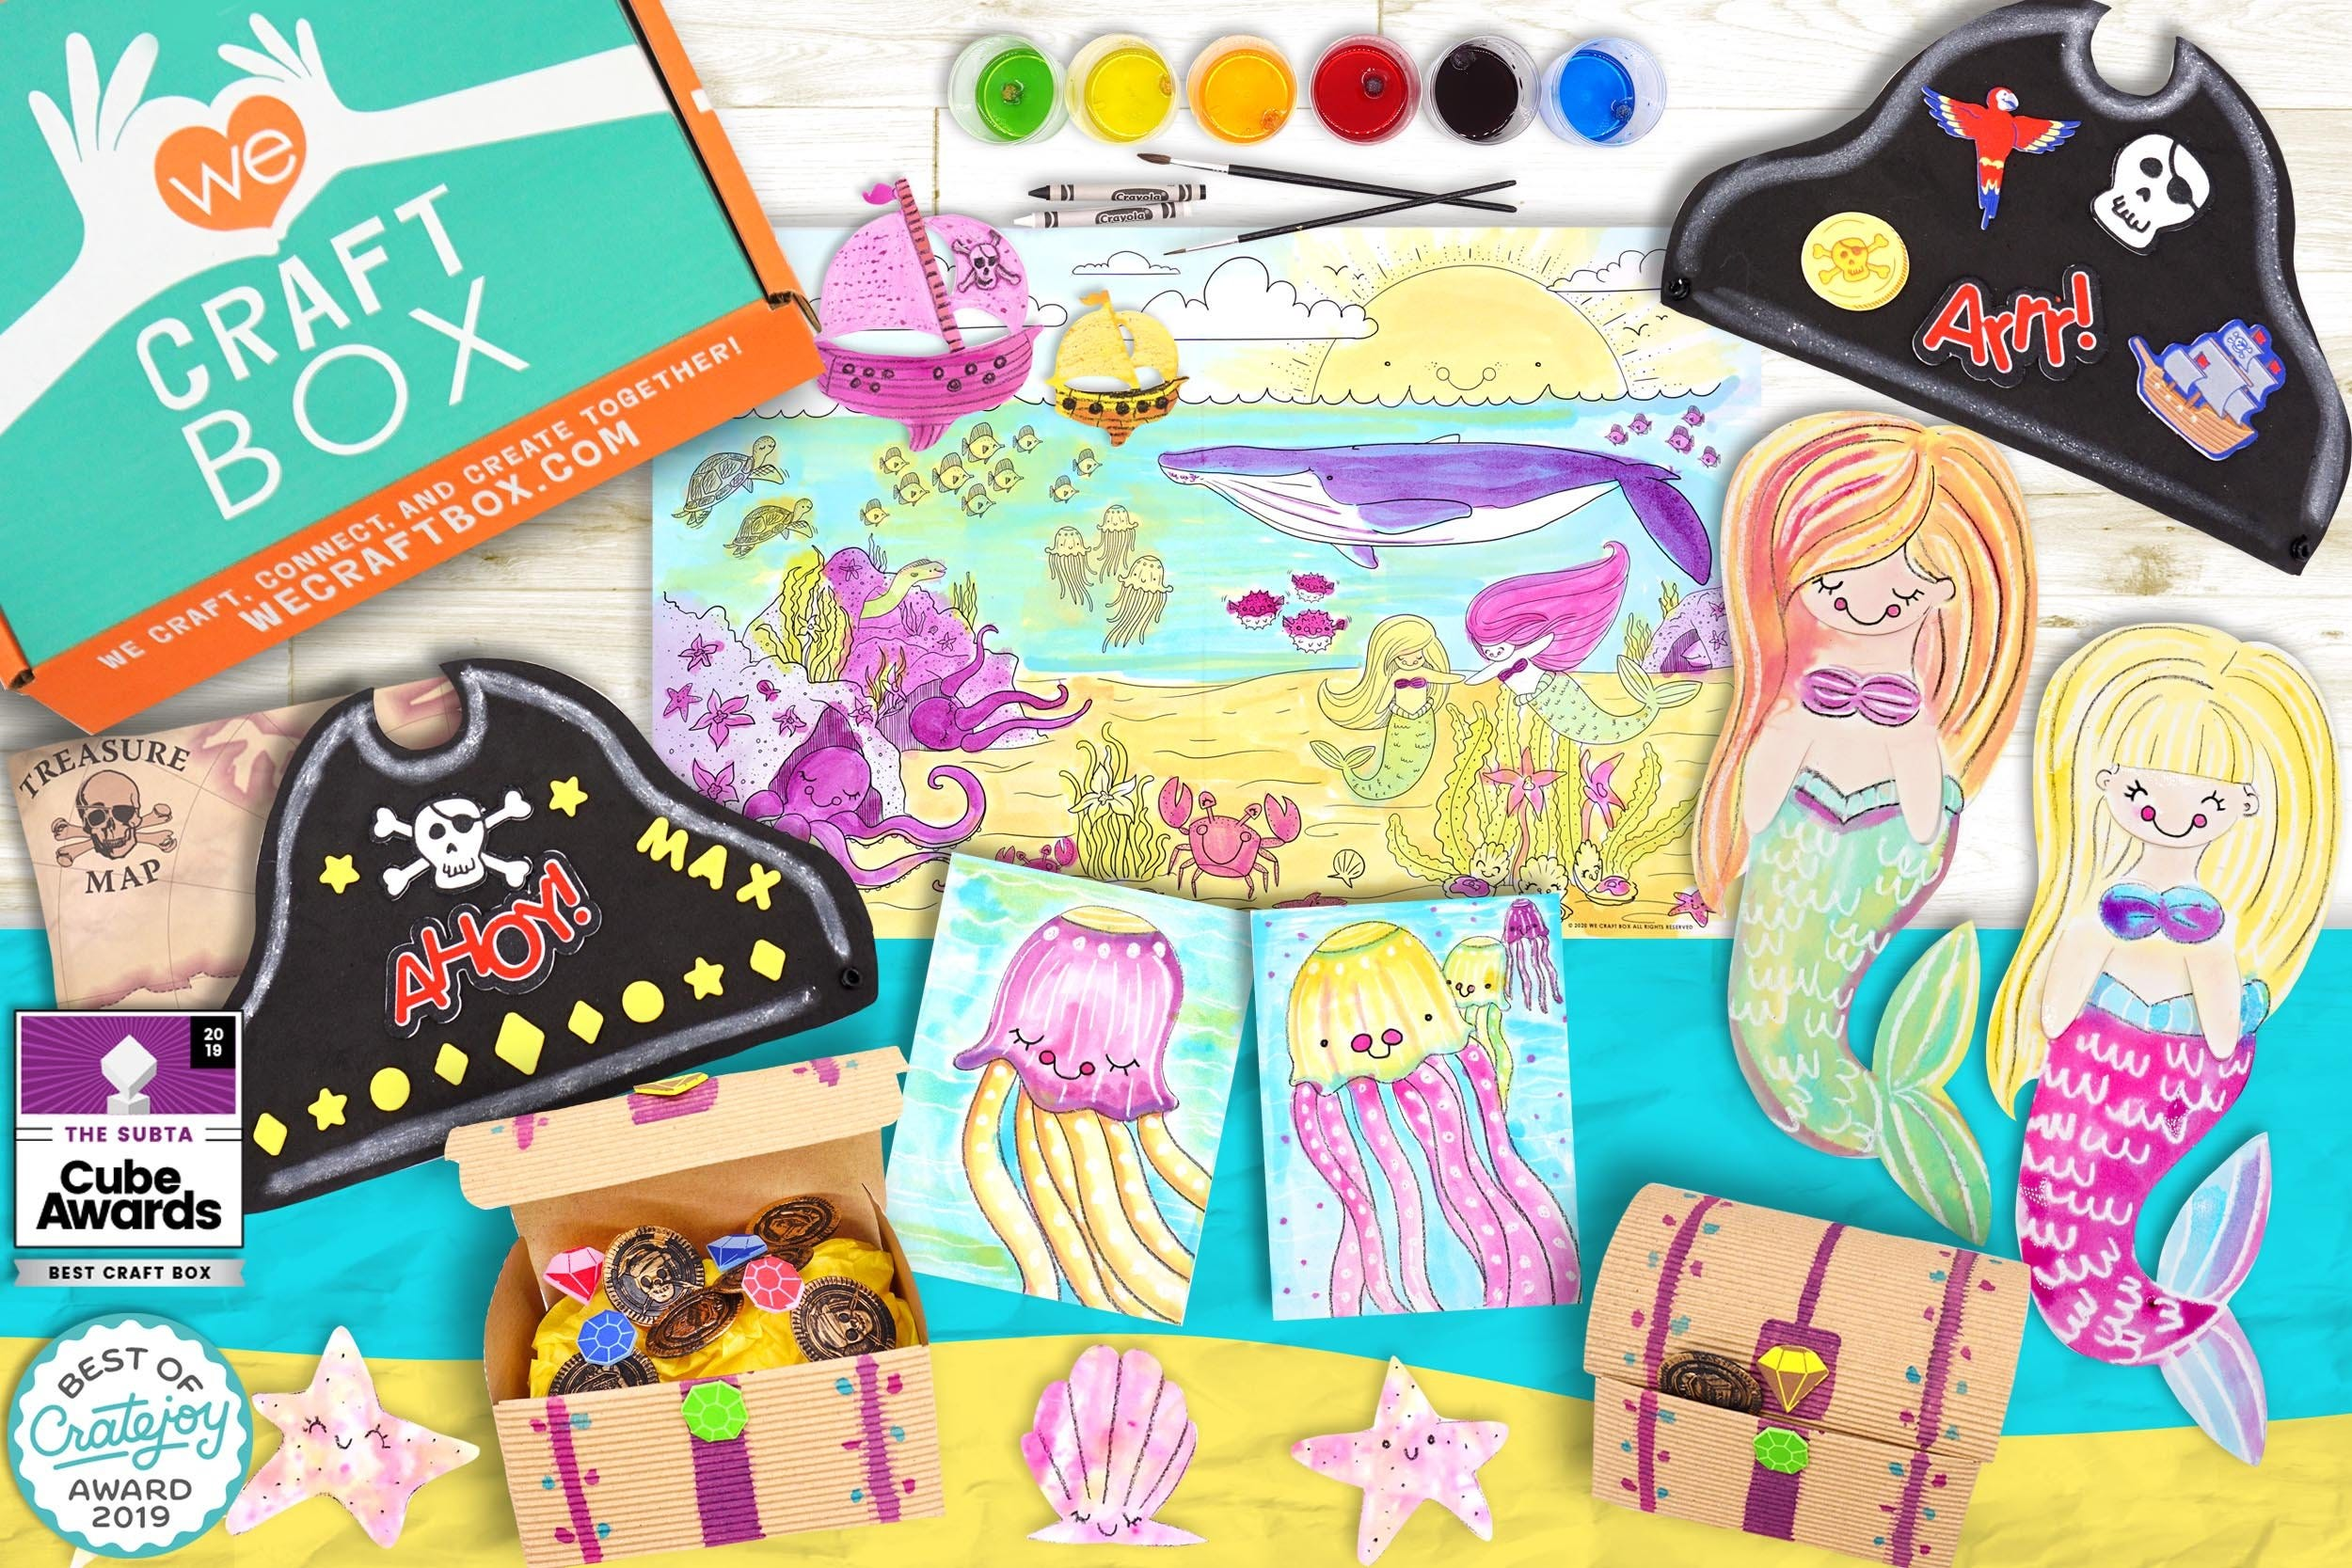 A flatlay of a mermaid-and-pirate themed craft set